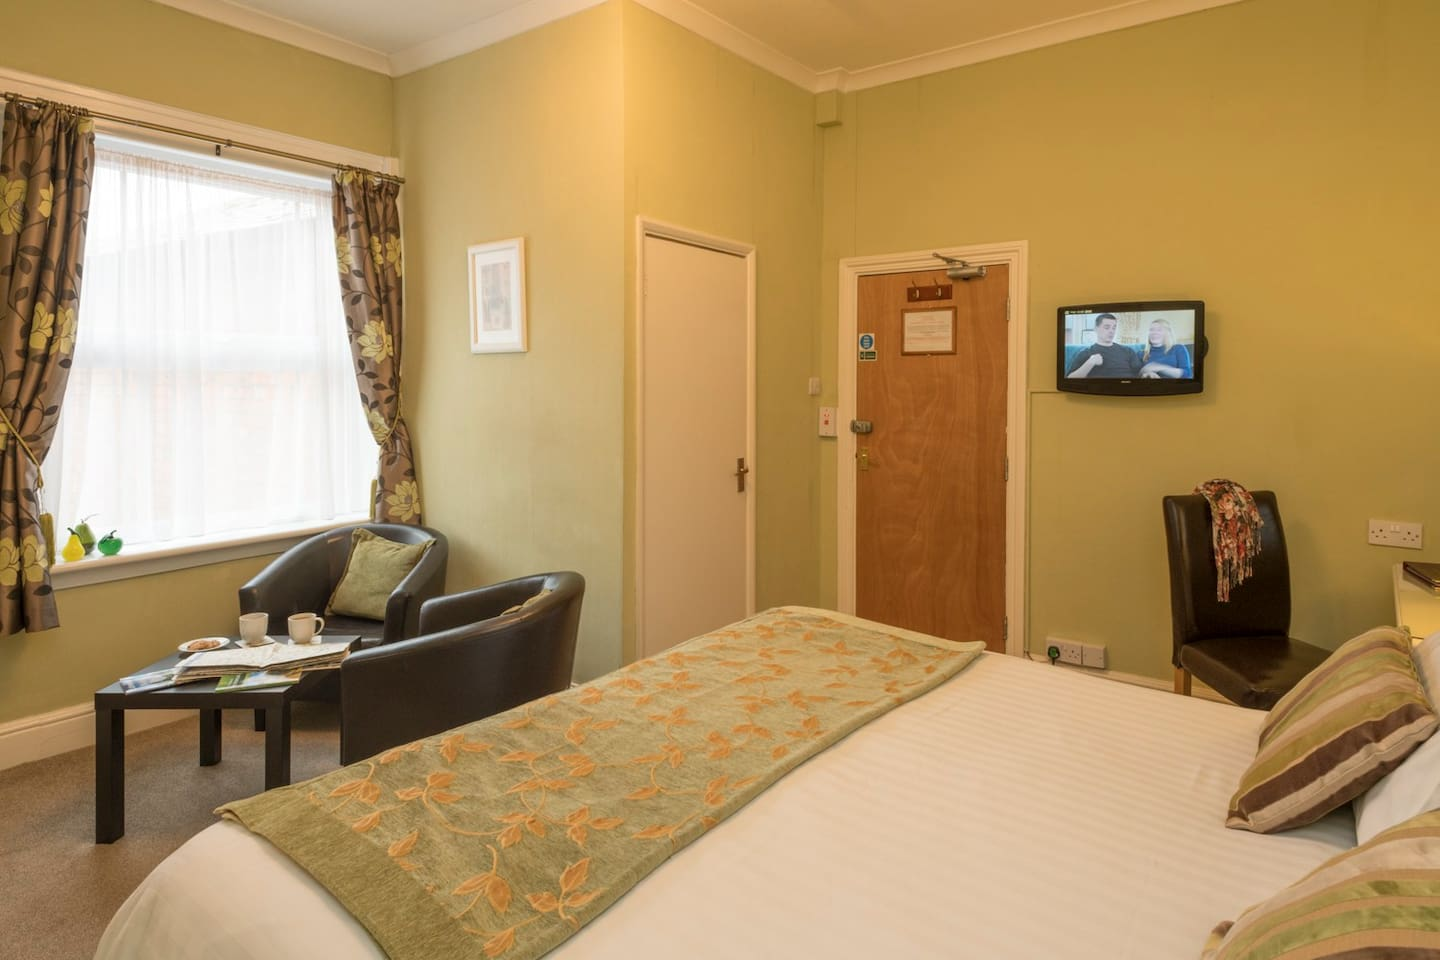 Our peaceful and comfortable Gloucester room